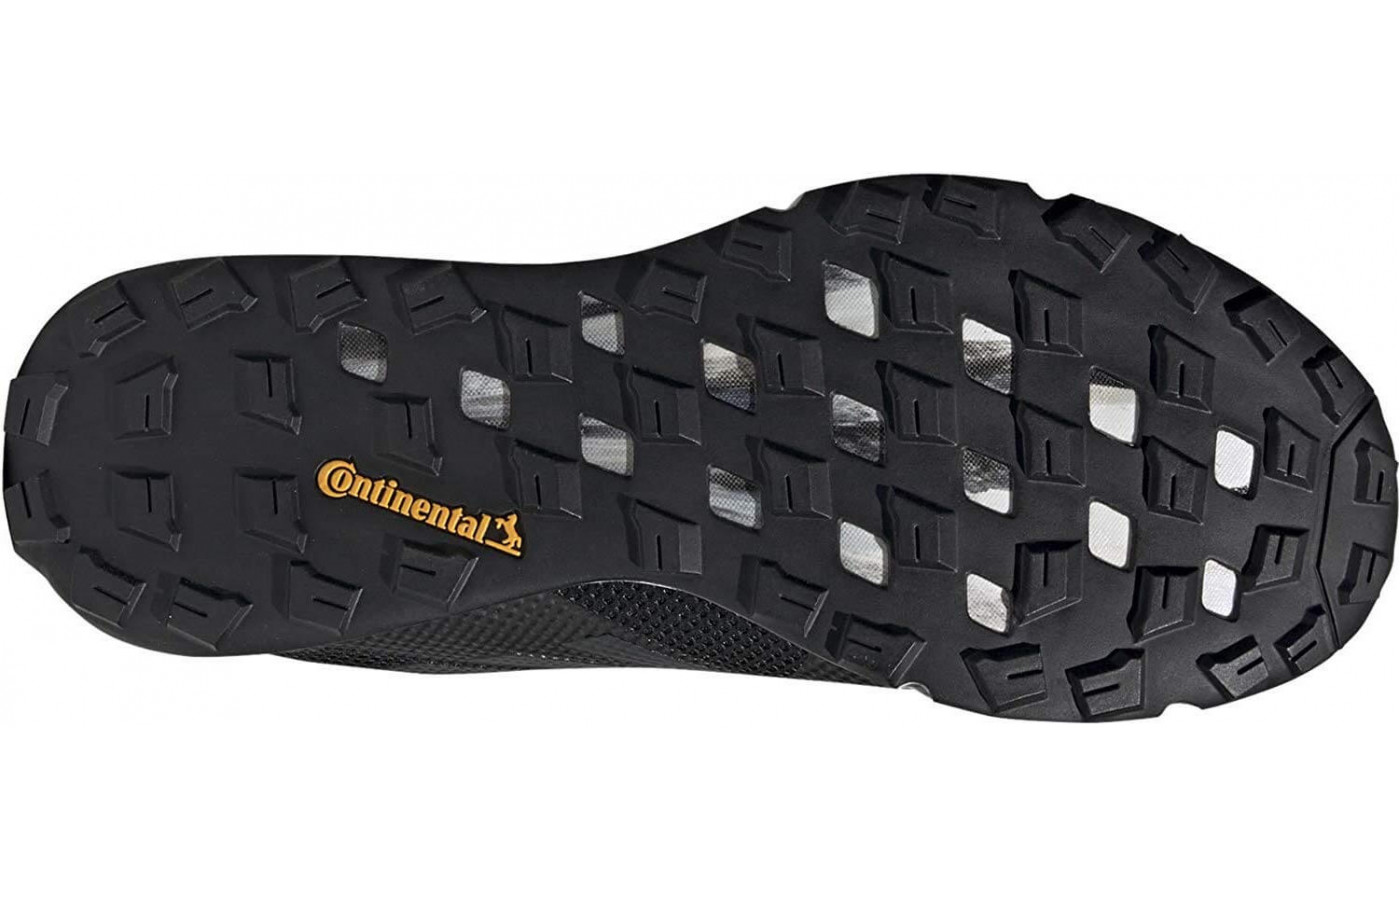 The Terrex Two features a Continental rubber outsole for an extra strong grip.